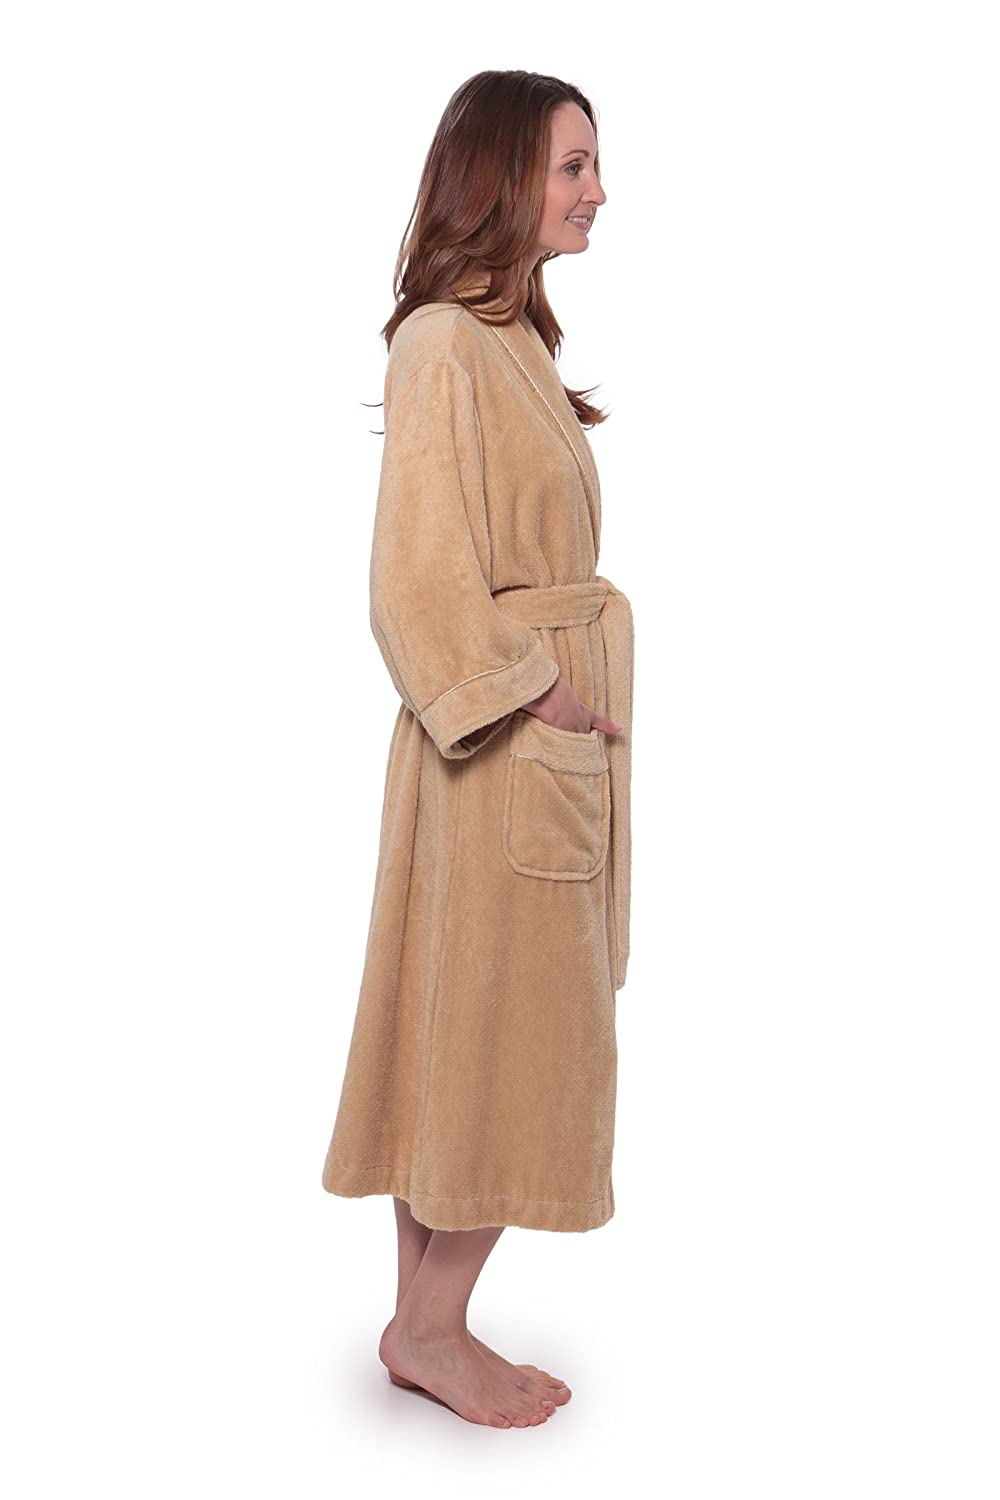 Womens Luxury Terry Cloth Bathrobe Bamboo Viscose Robe By Texere Lingerie Favorit Xo 55 Ecovaganza At Amazon Clothing Store